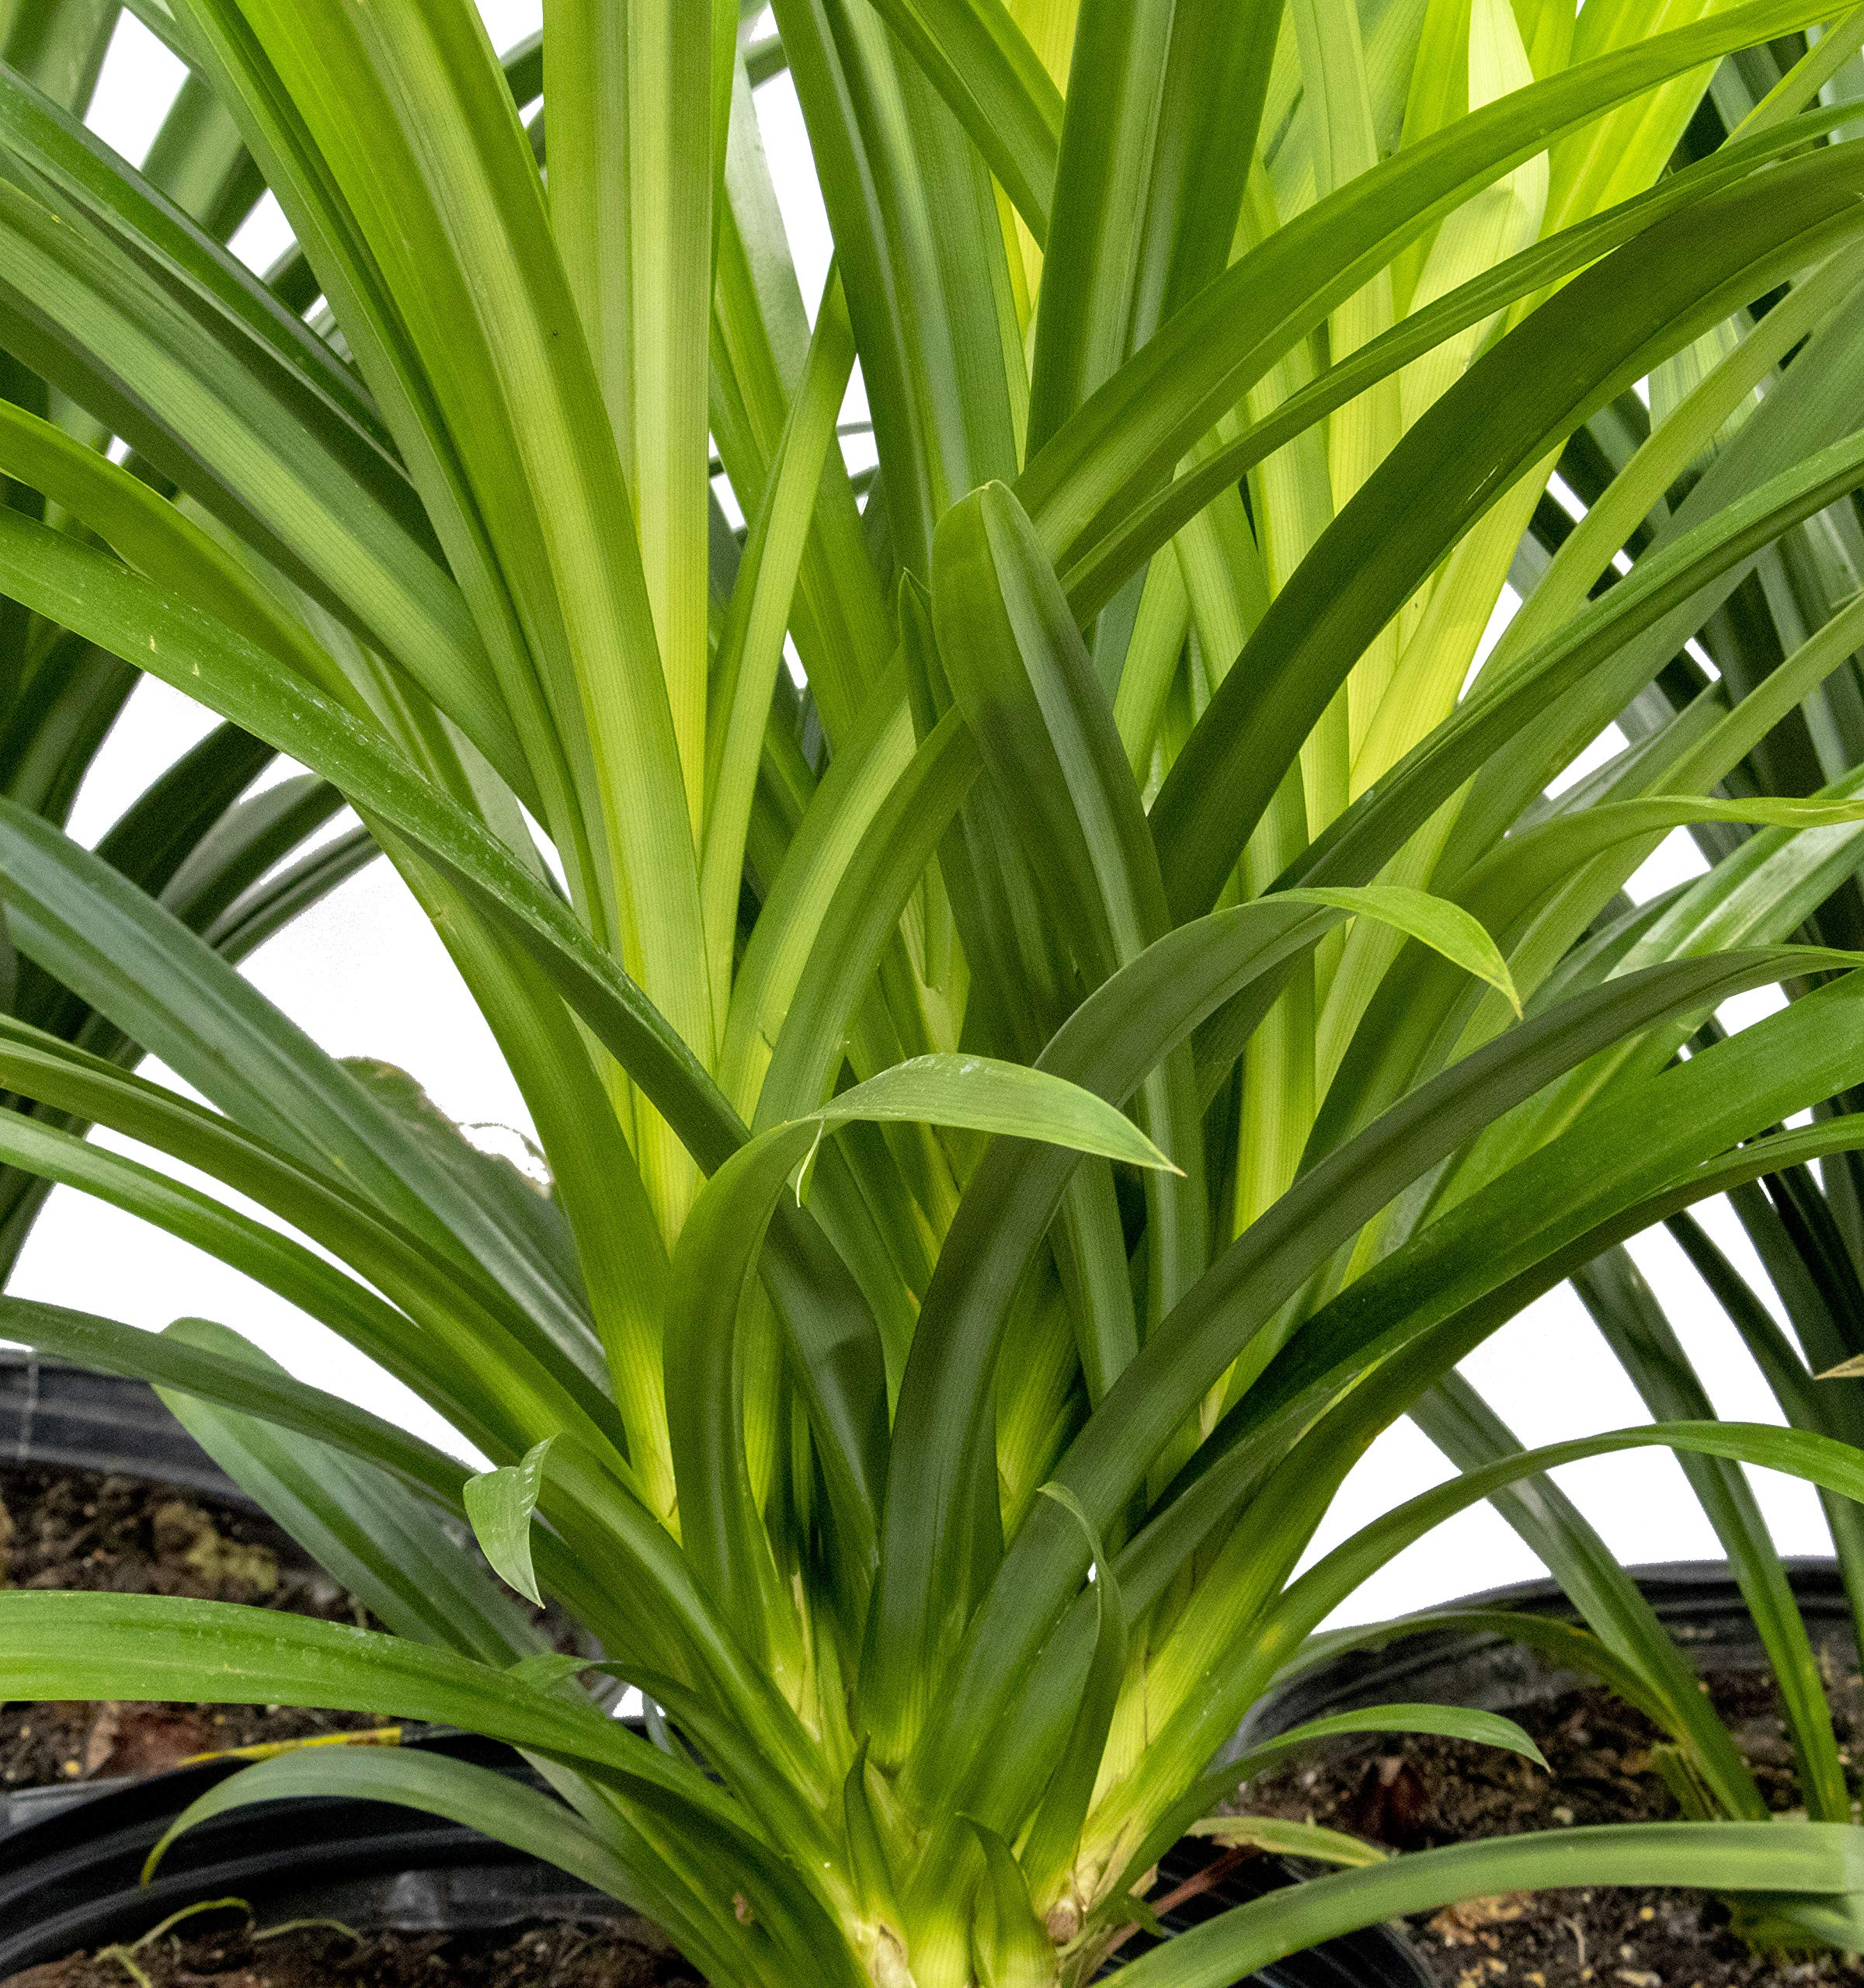 Fragrant Spice Pandan Size Small 6 to 12 INCHES Tall Live Plant, Pandanus amaryllifolius, La Dua, See Our Guarantee Below Before Ordering